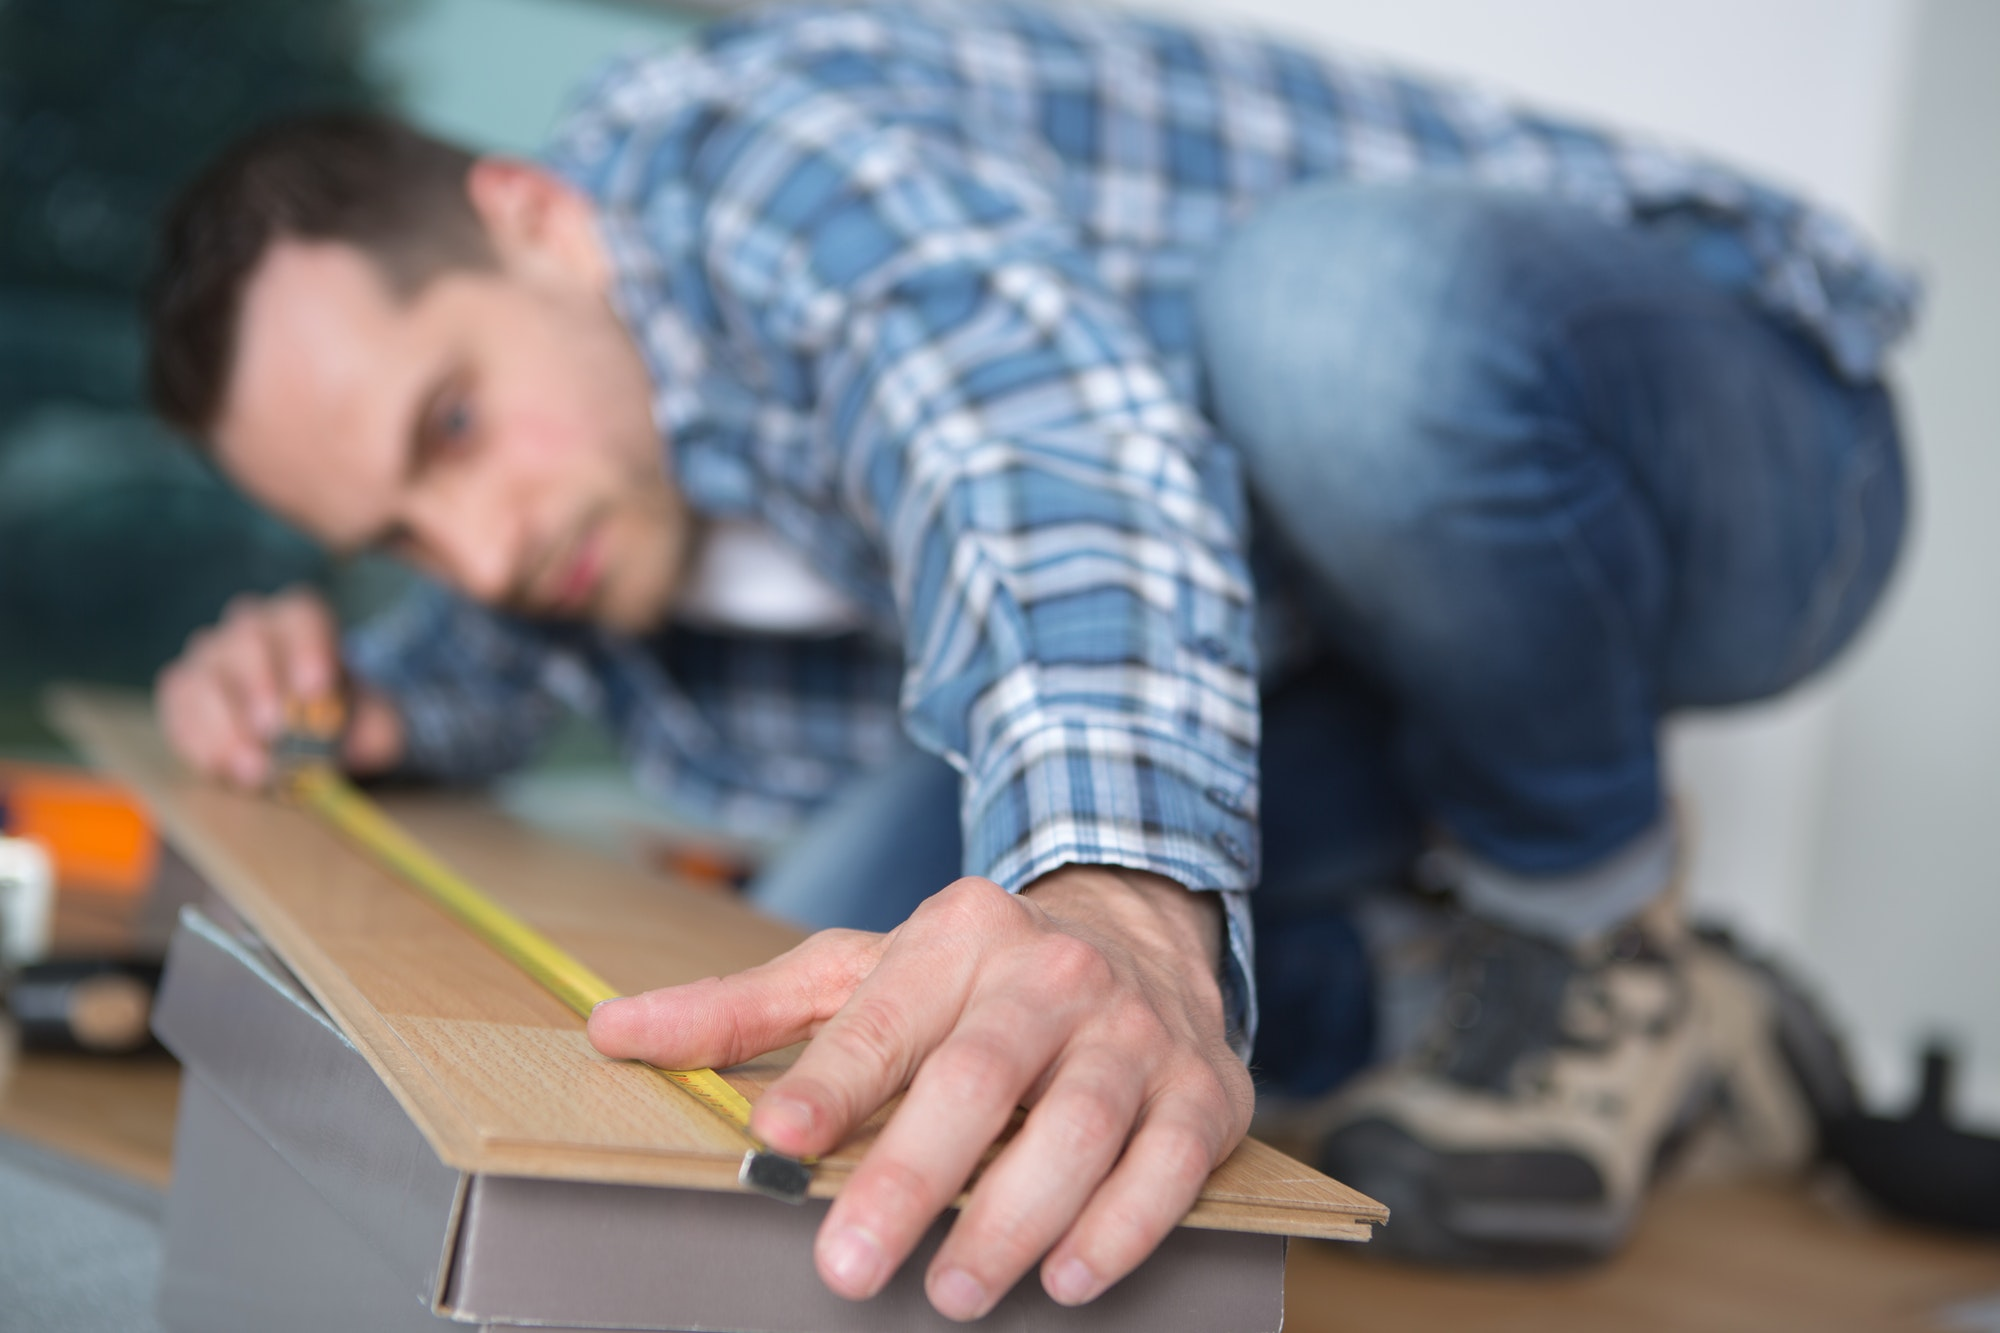 Man measuring laminate board